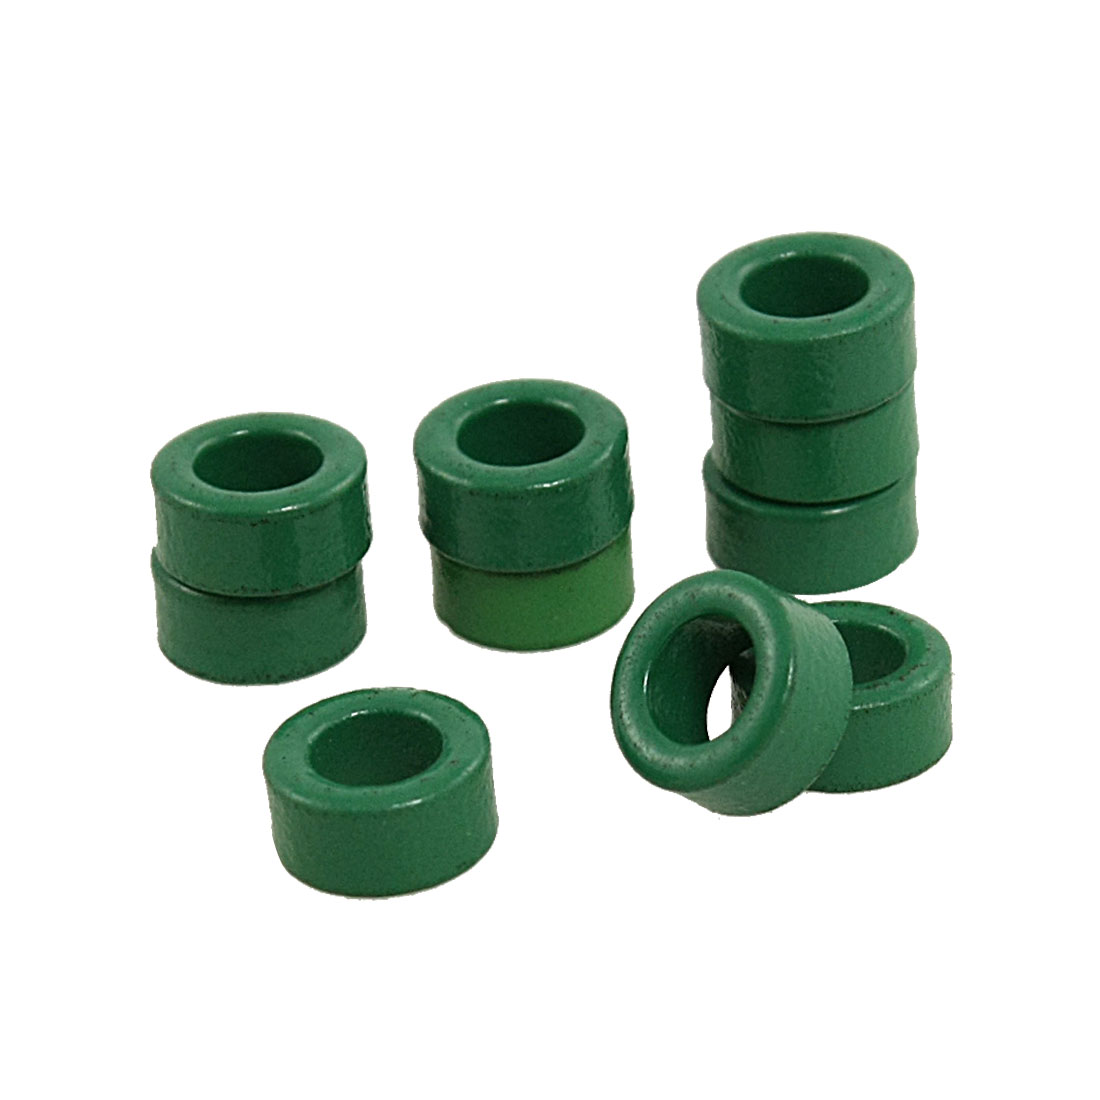 UXCELL 10 Pcs Inductor Coils Green Toroid Ferrite Cores 10Mm X 6Mm X 5Mm(China (Mainland))